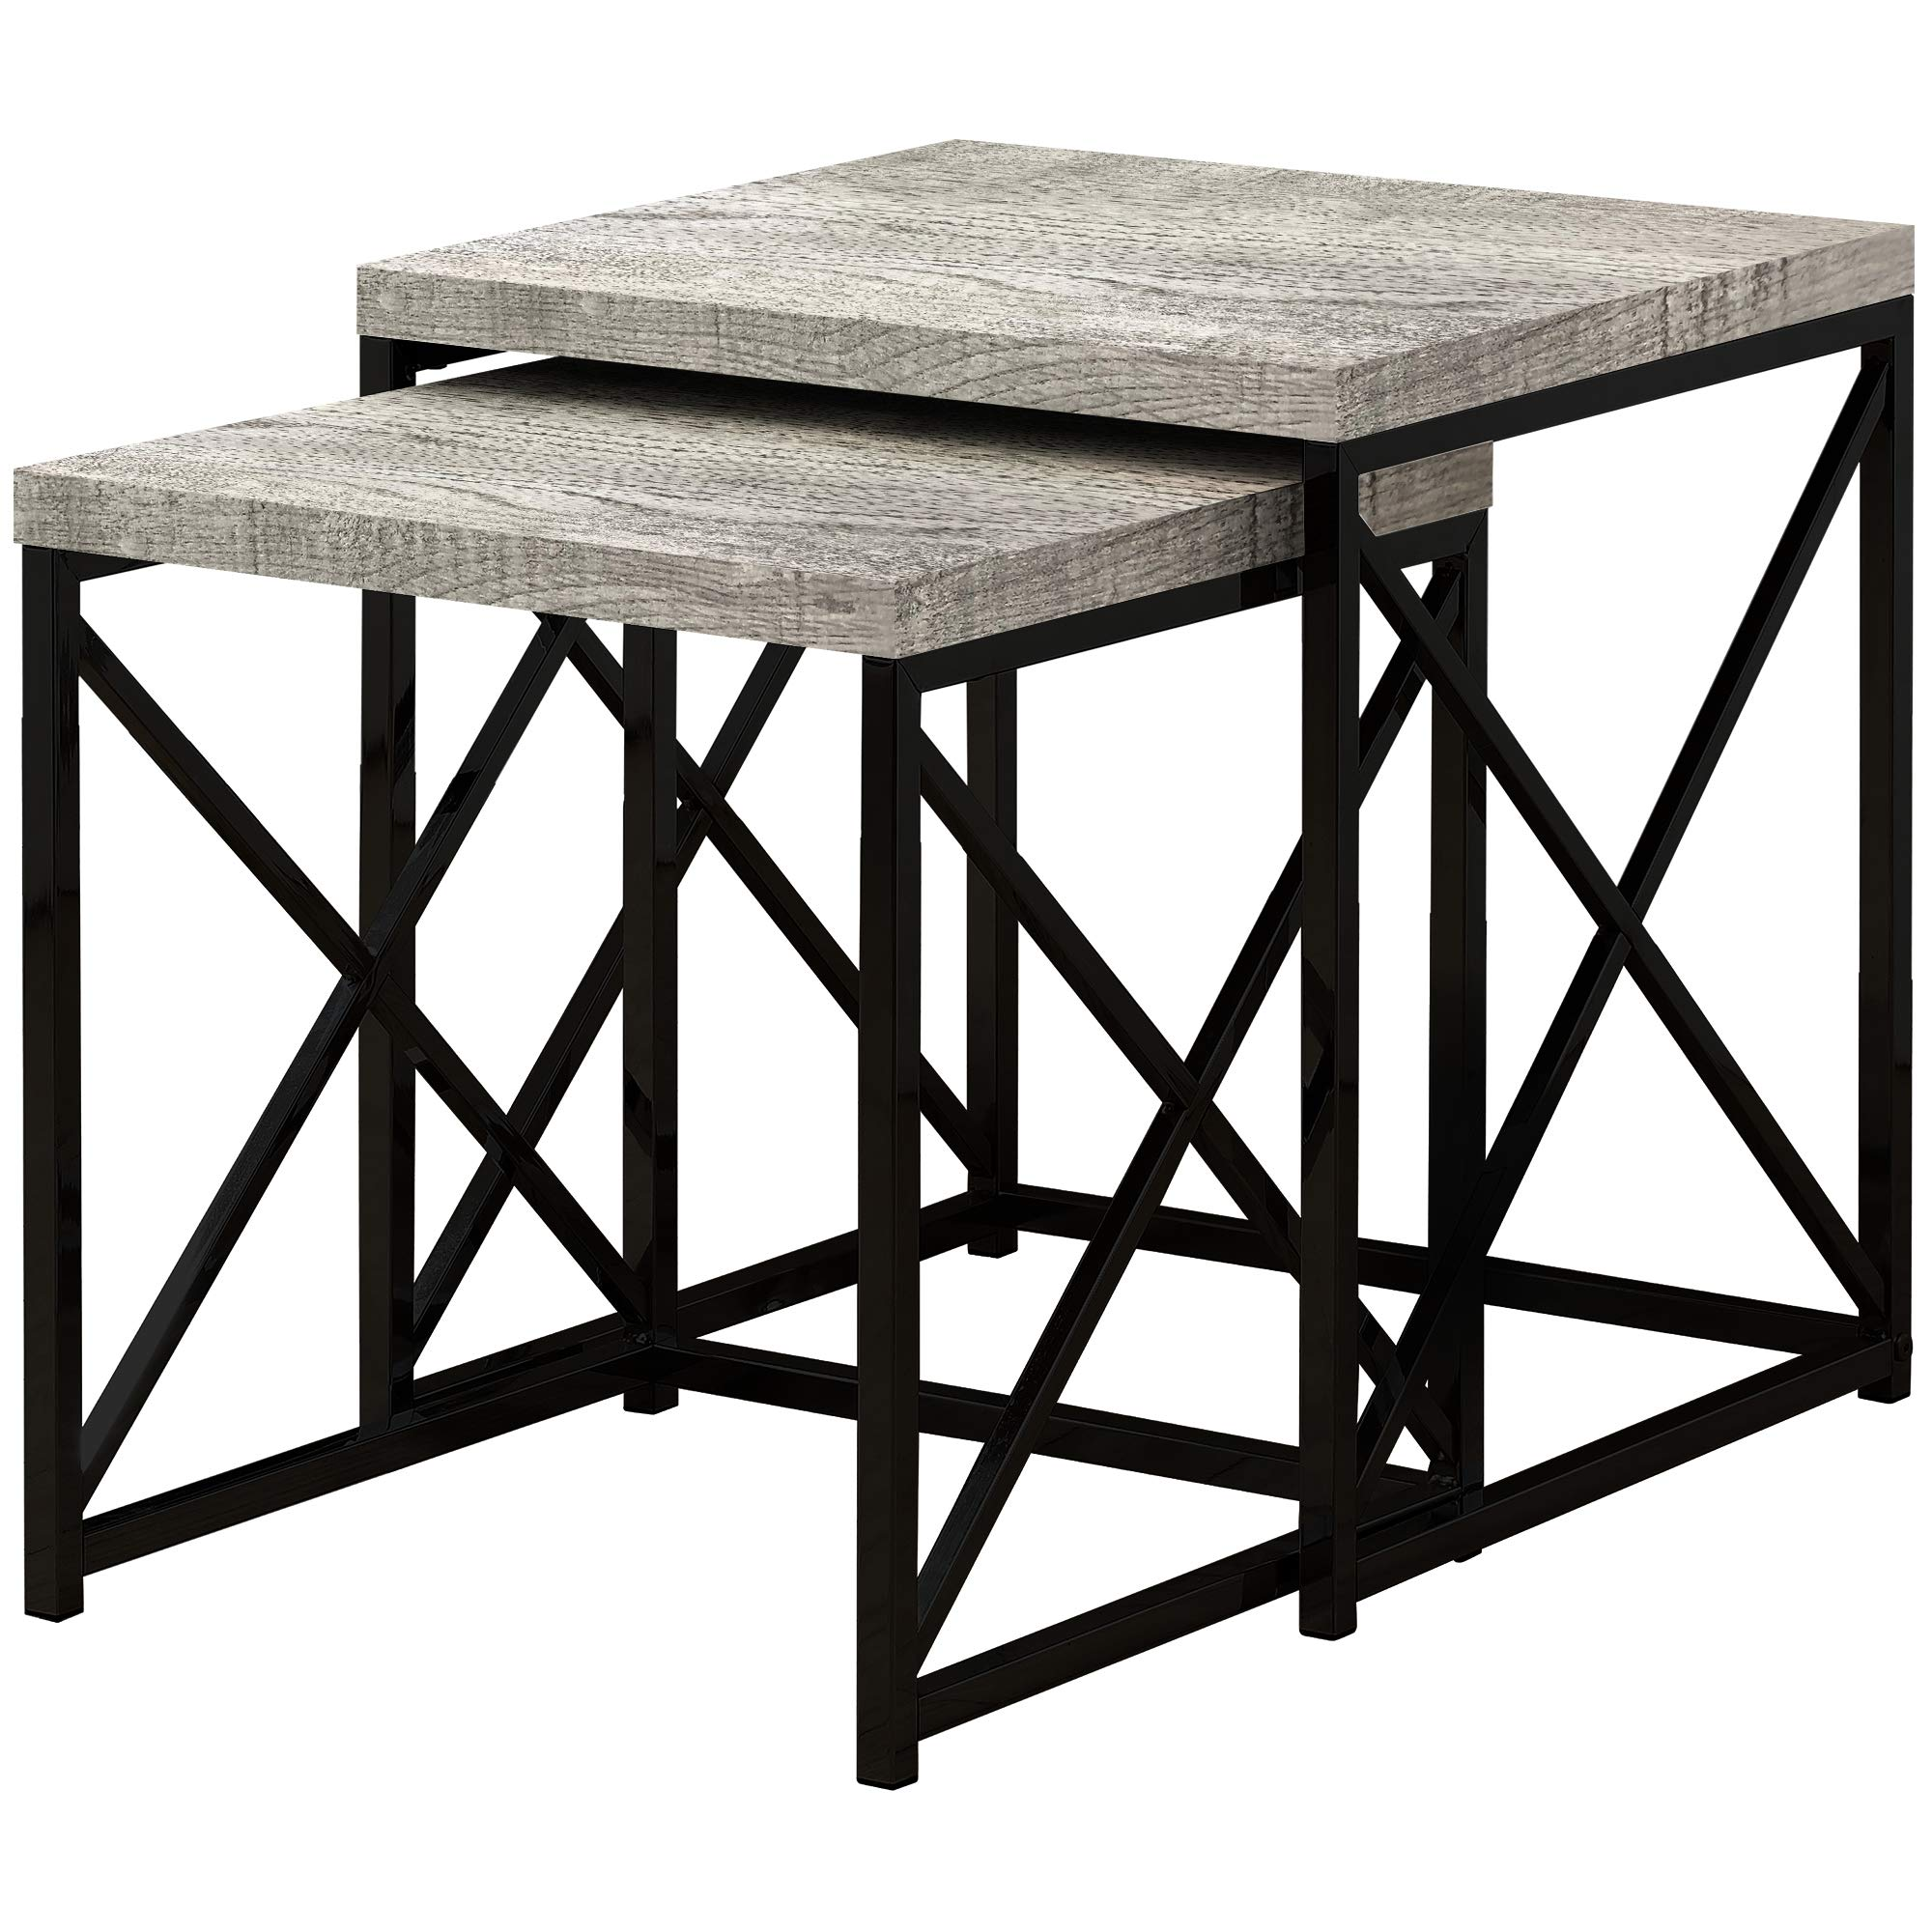 Monarch Specialties I I 3414 TABLE-2PCS Set/Grey Reclaimed Wood/Black Nesting Table, Gray by Monarch Specialties